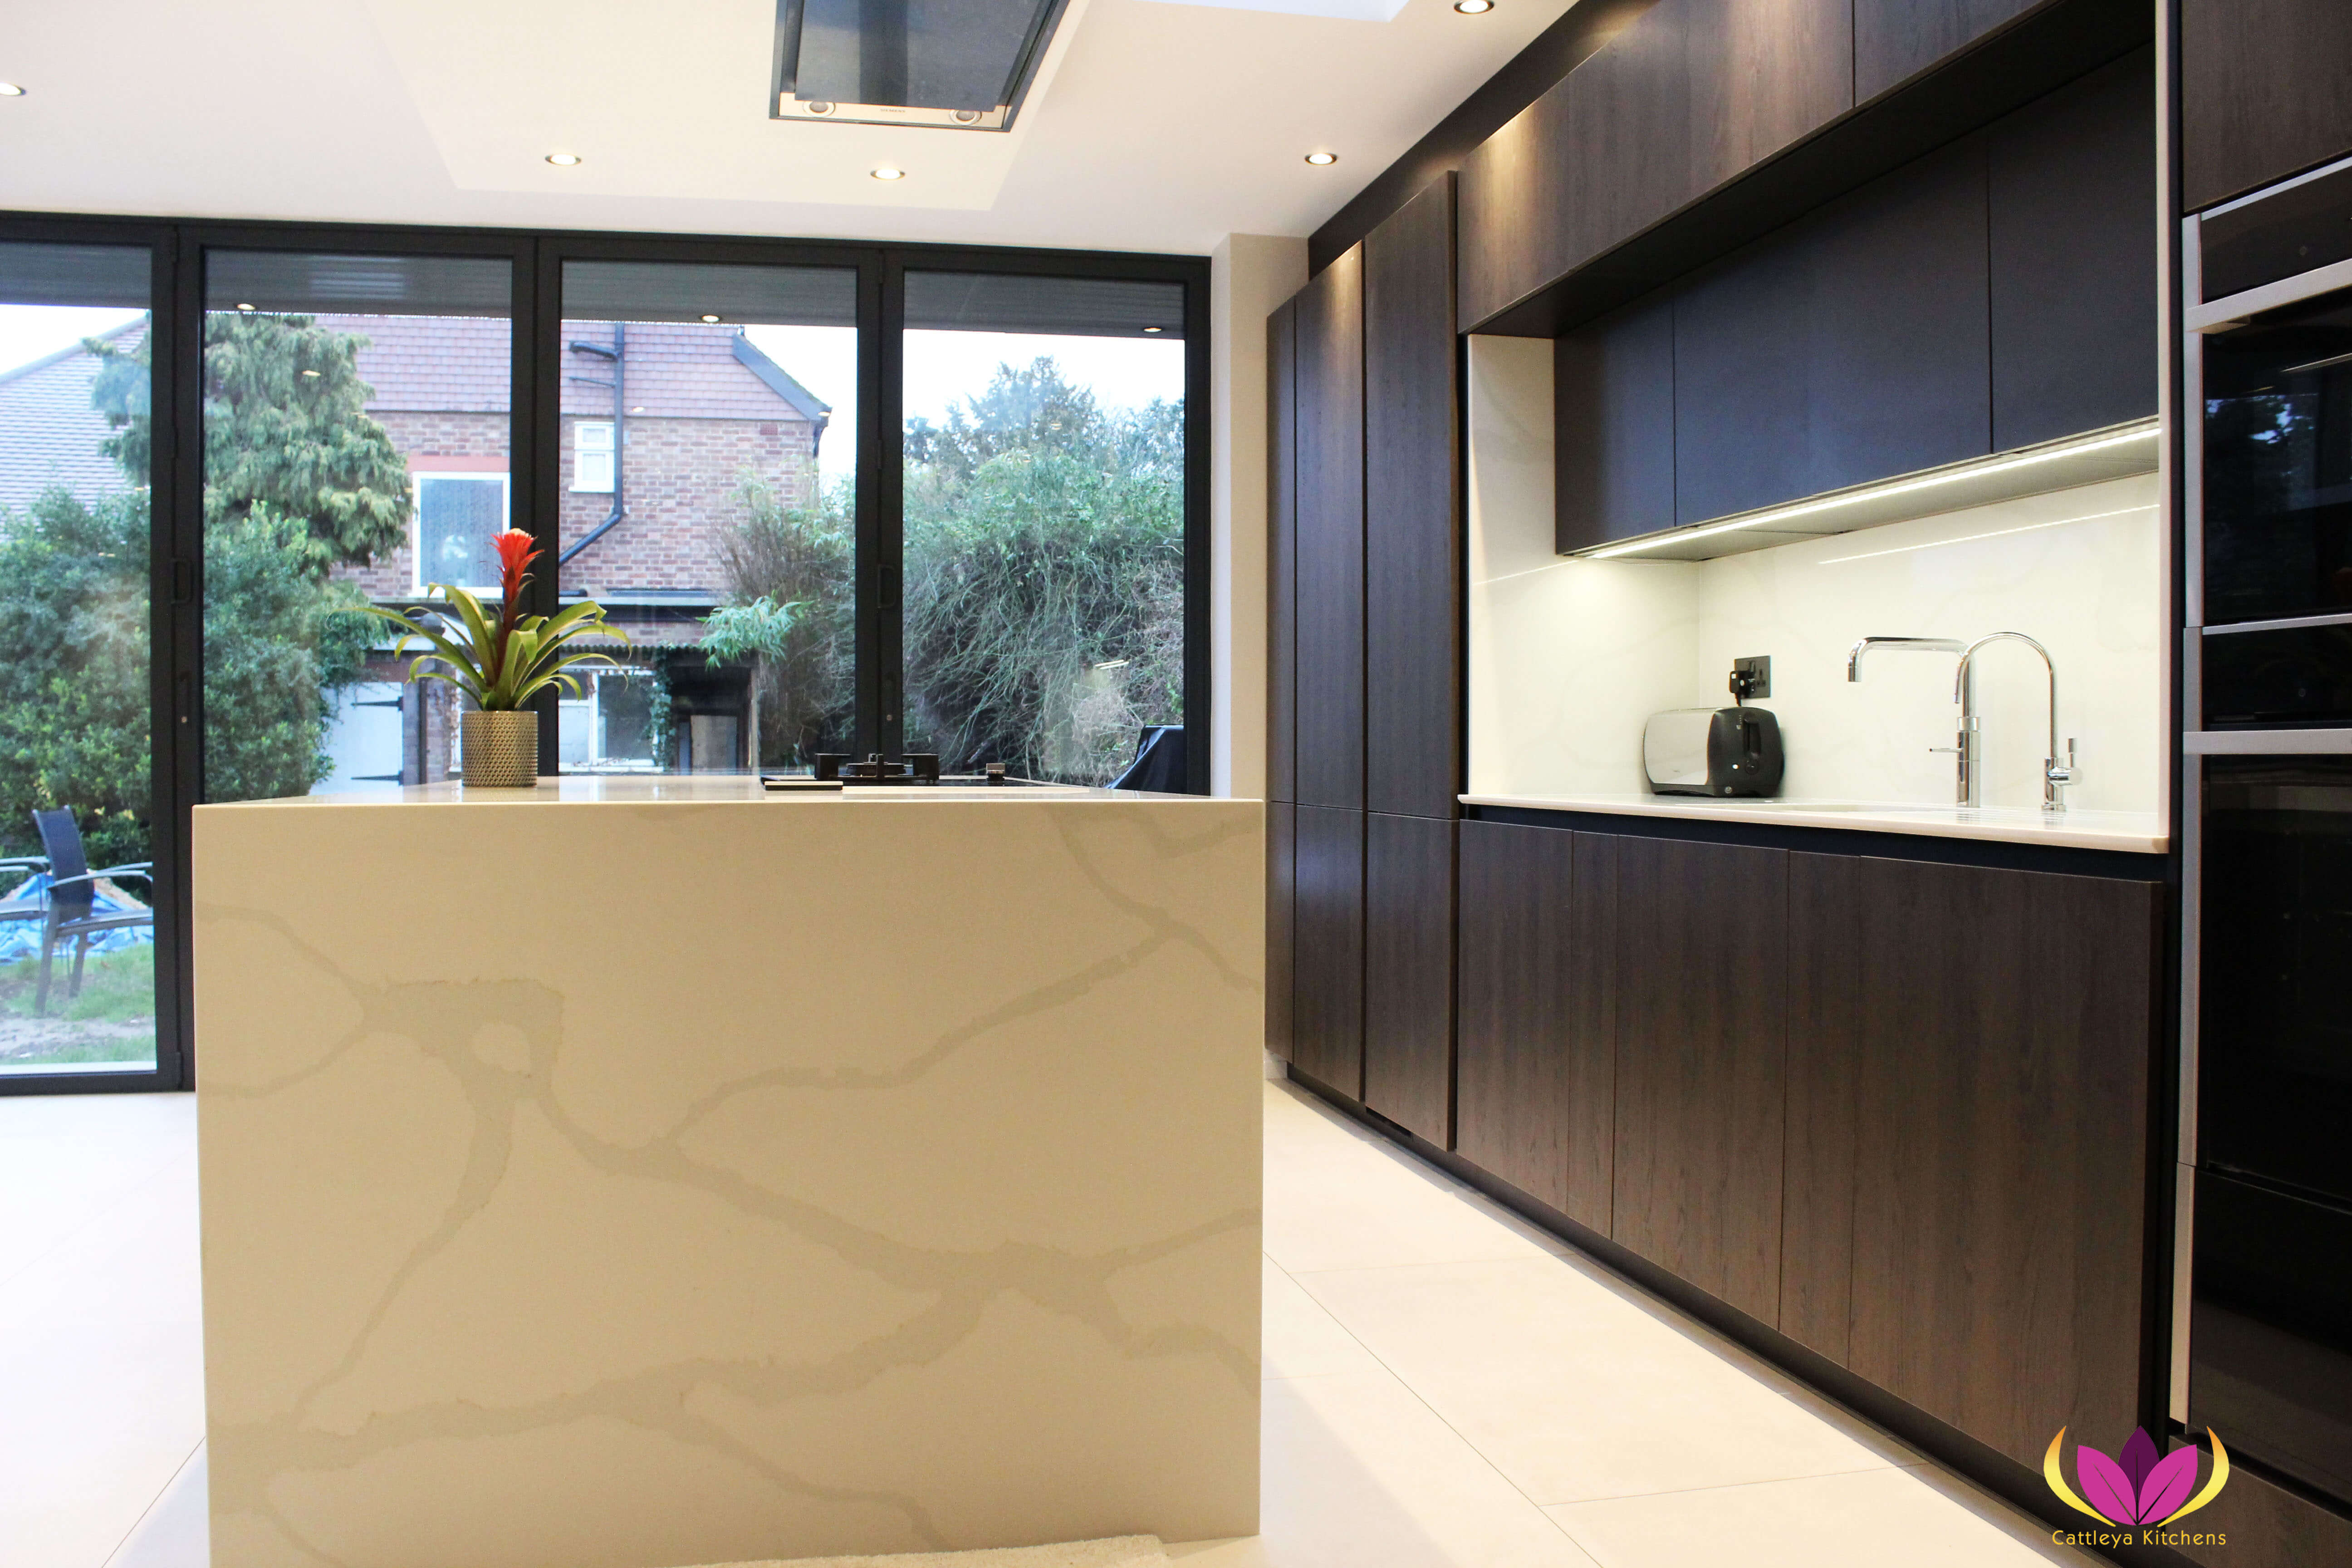 Wood Effect & White Marble Twickenham Finished Kitchen Project